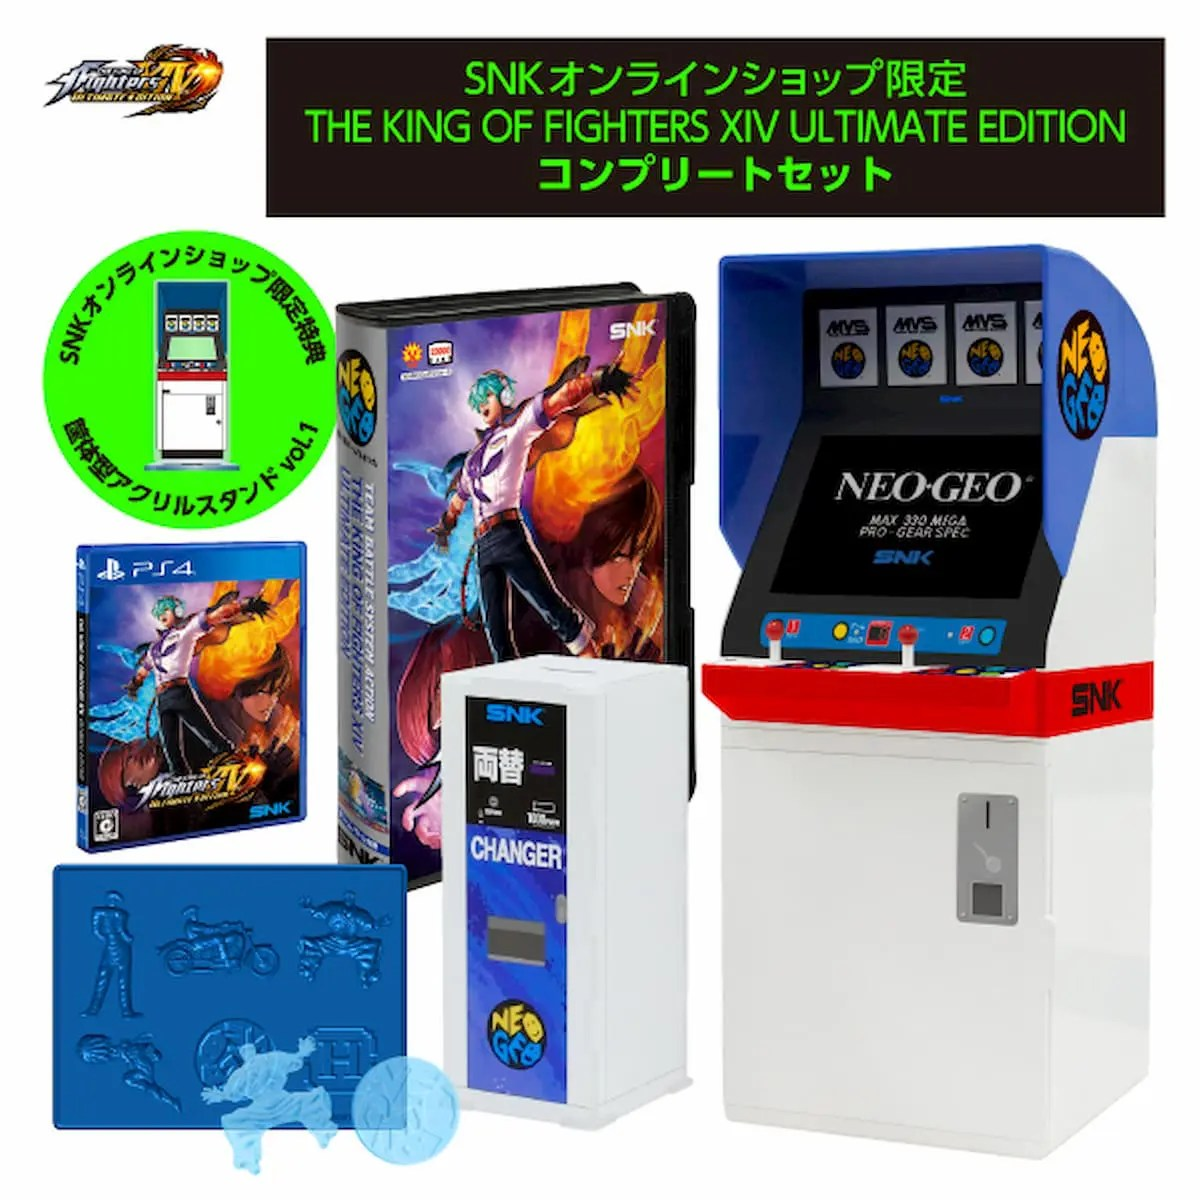 THE KING OF FIGHTERS XIV ULTIMATE EDITION コンプリートセット - PS4